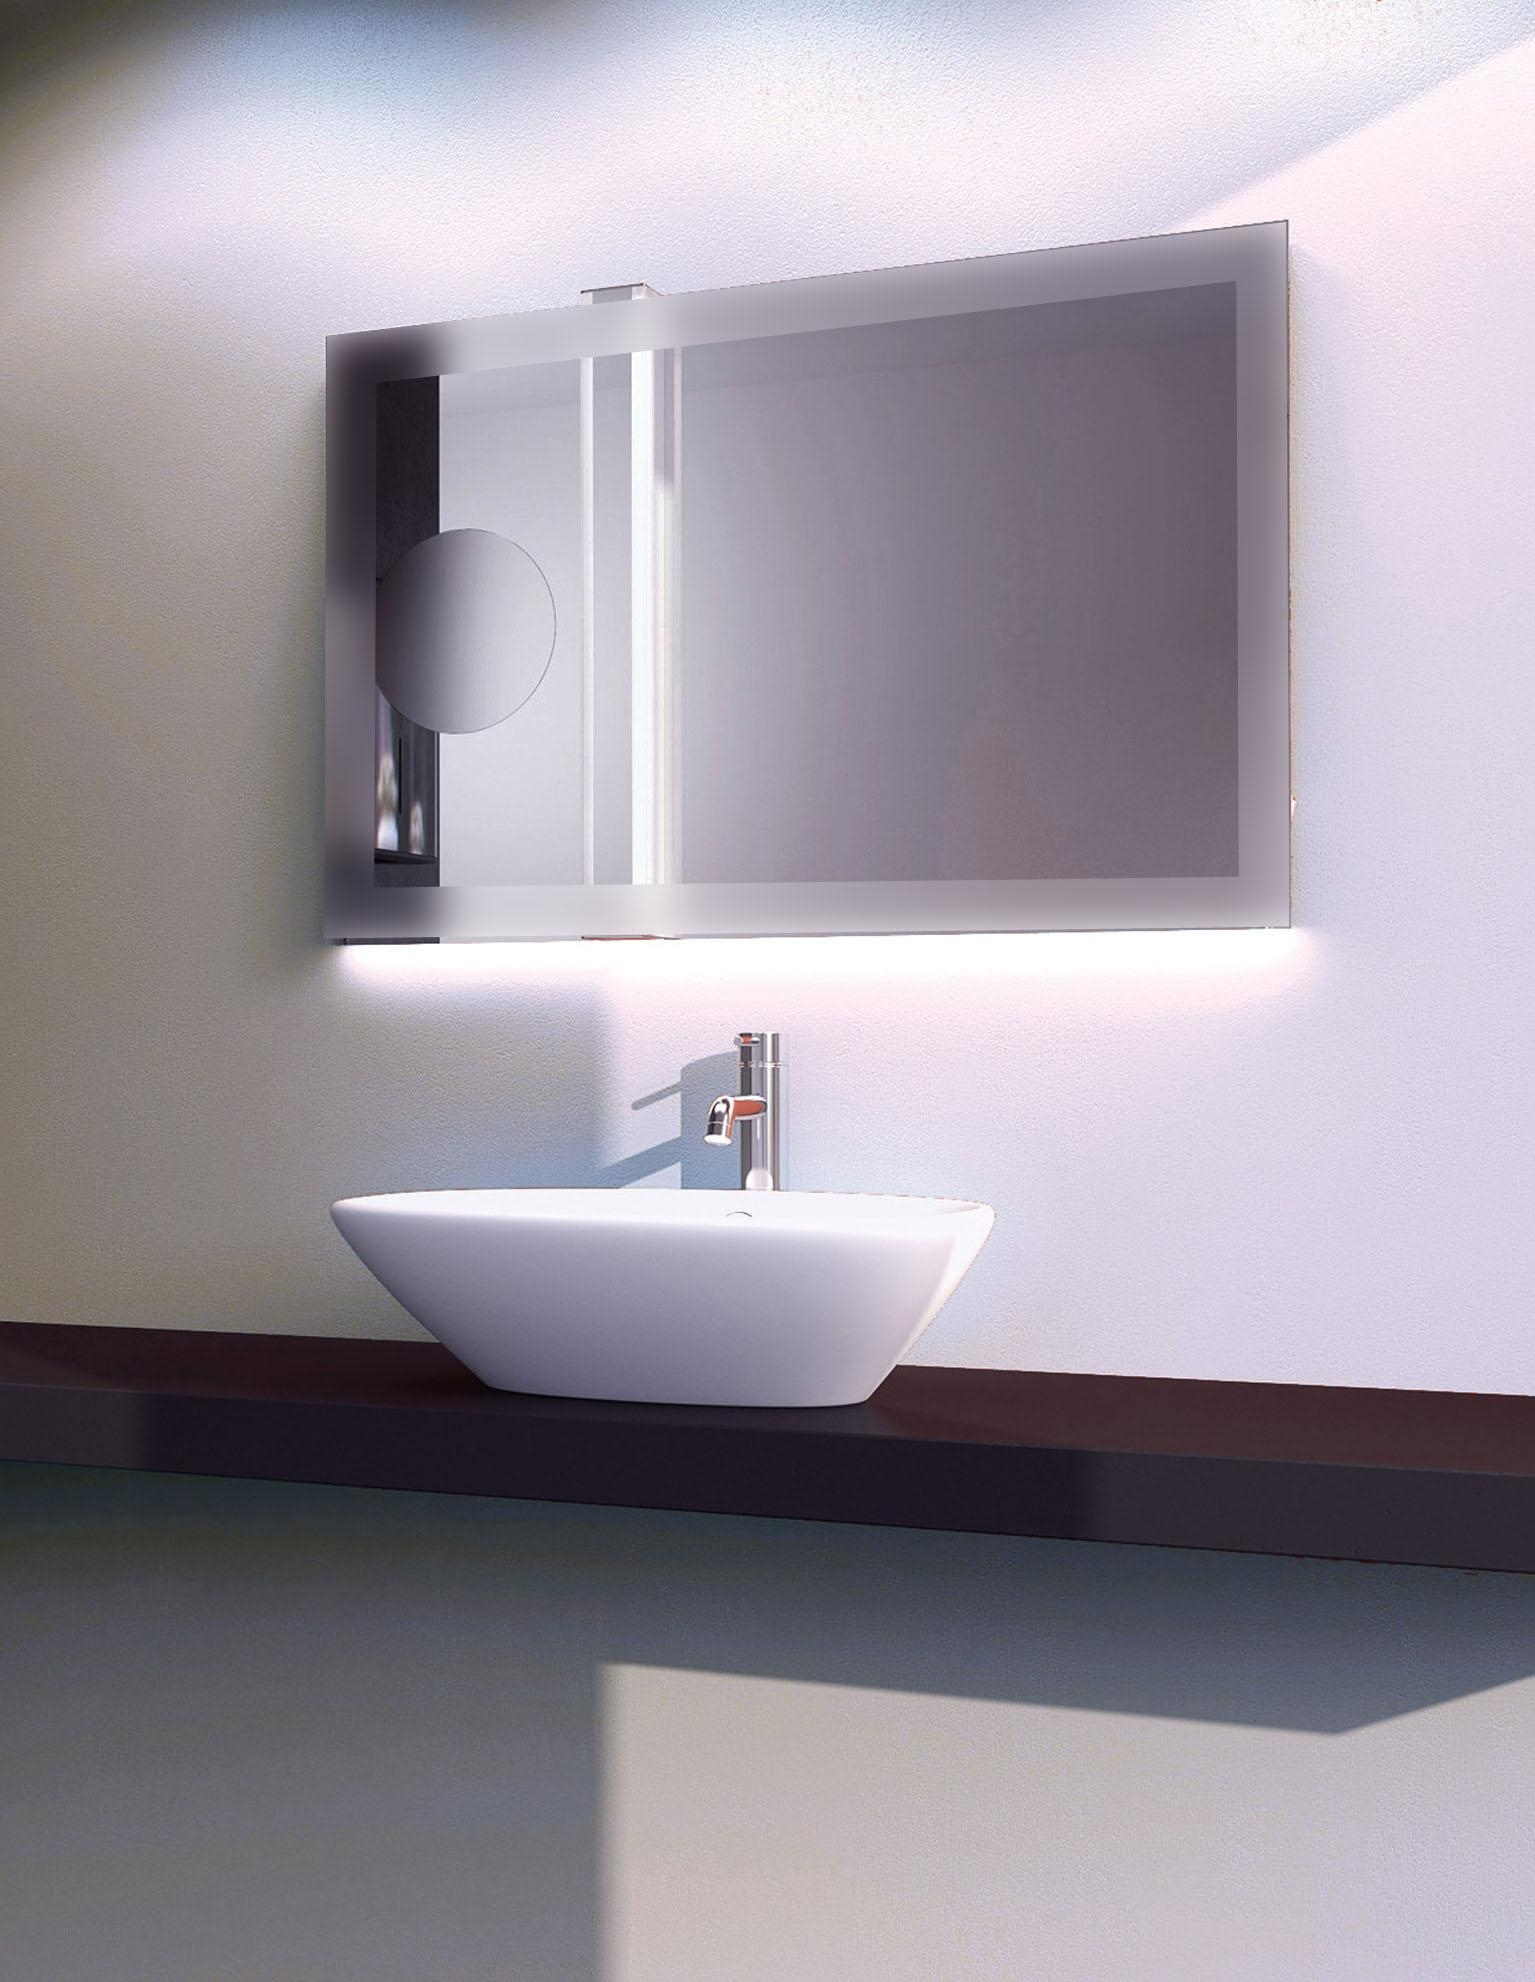 Best Bathroom Mirrors With Led Lights | Useful Reviews Of Shower In Bathroom Mirrors With Led Lights (Image 16 of 20)